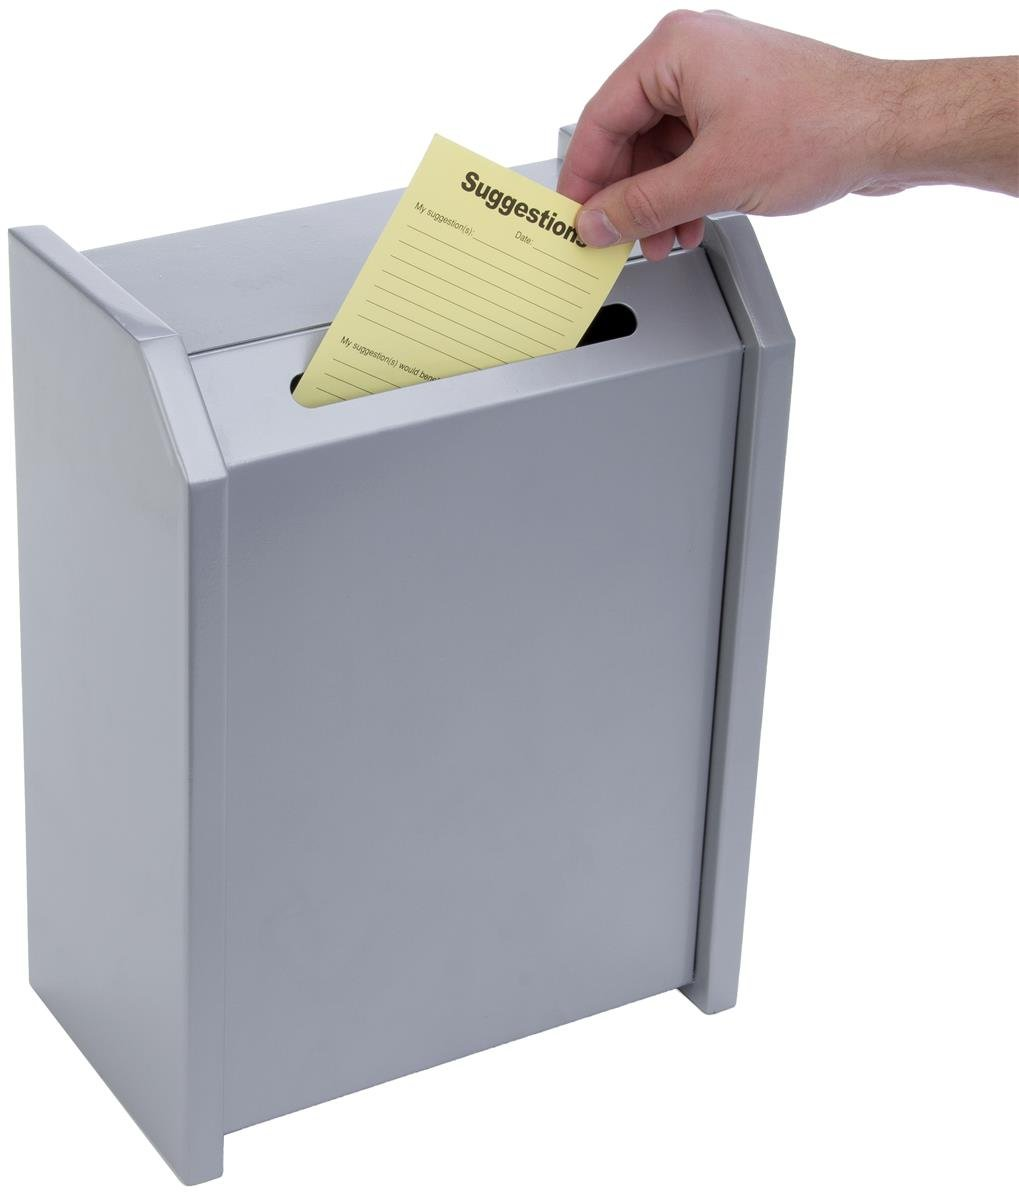 Displays2go Metal Ballot Box, Tabletop Or Wall Mount, Top Loading, Locking, Silver (TBSUG2SV)